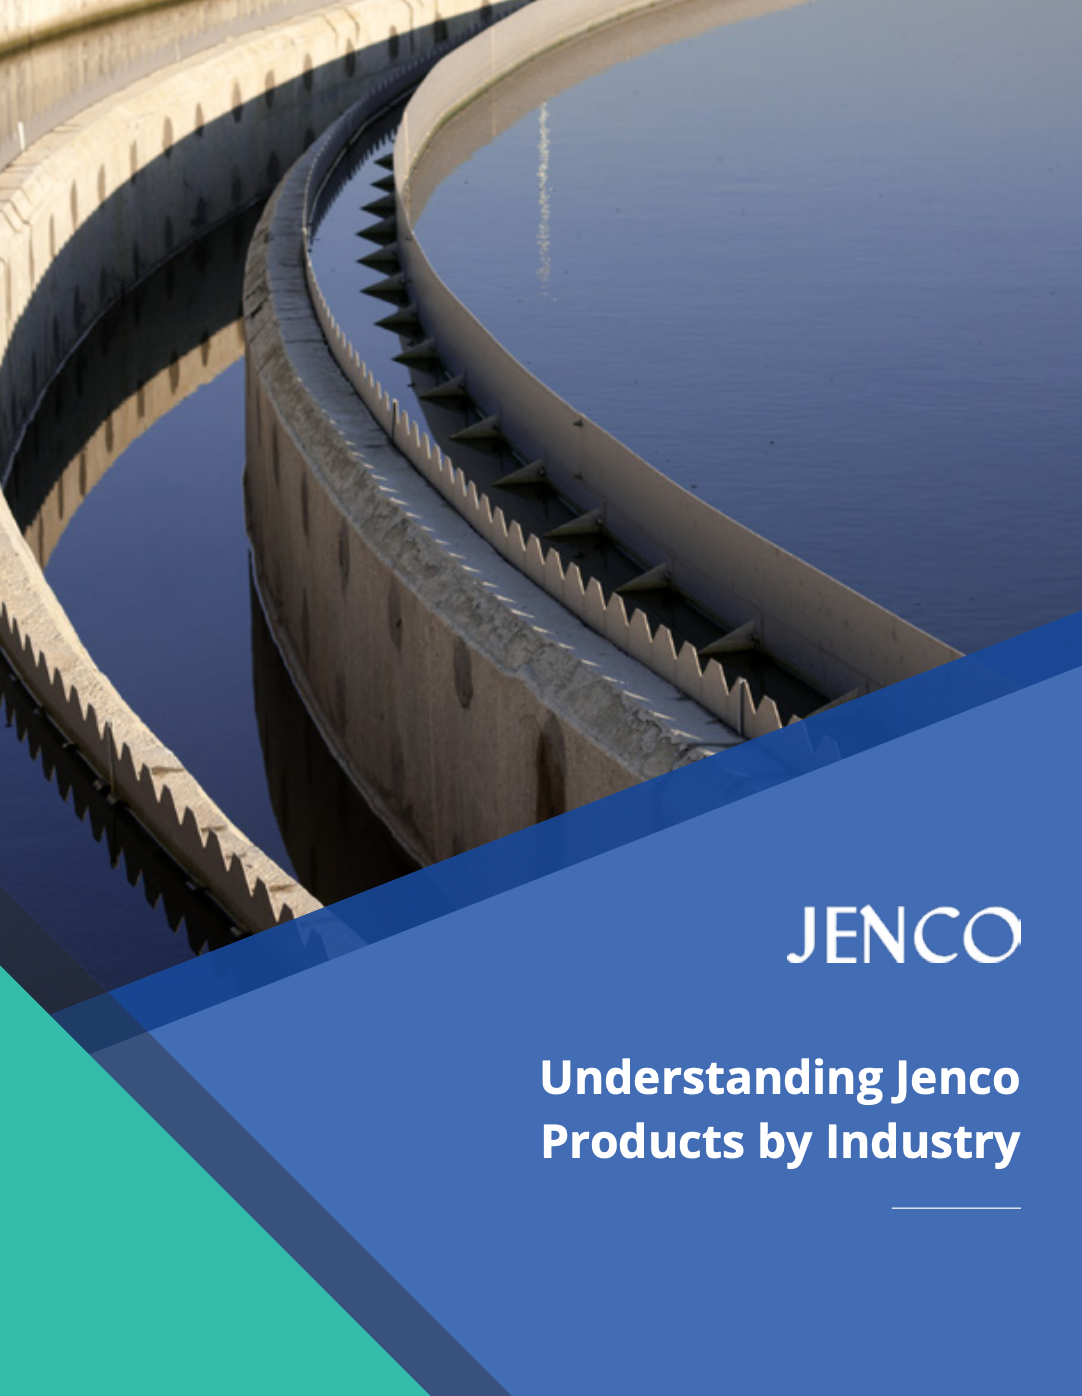 Jenco by Industries